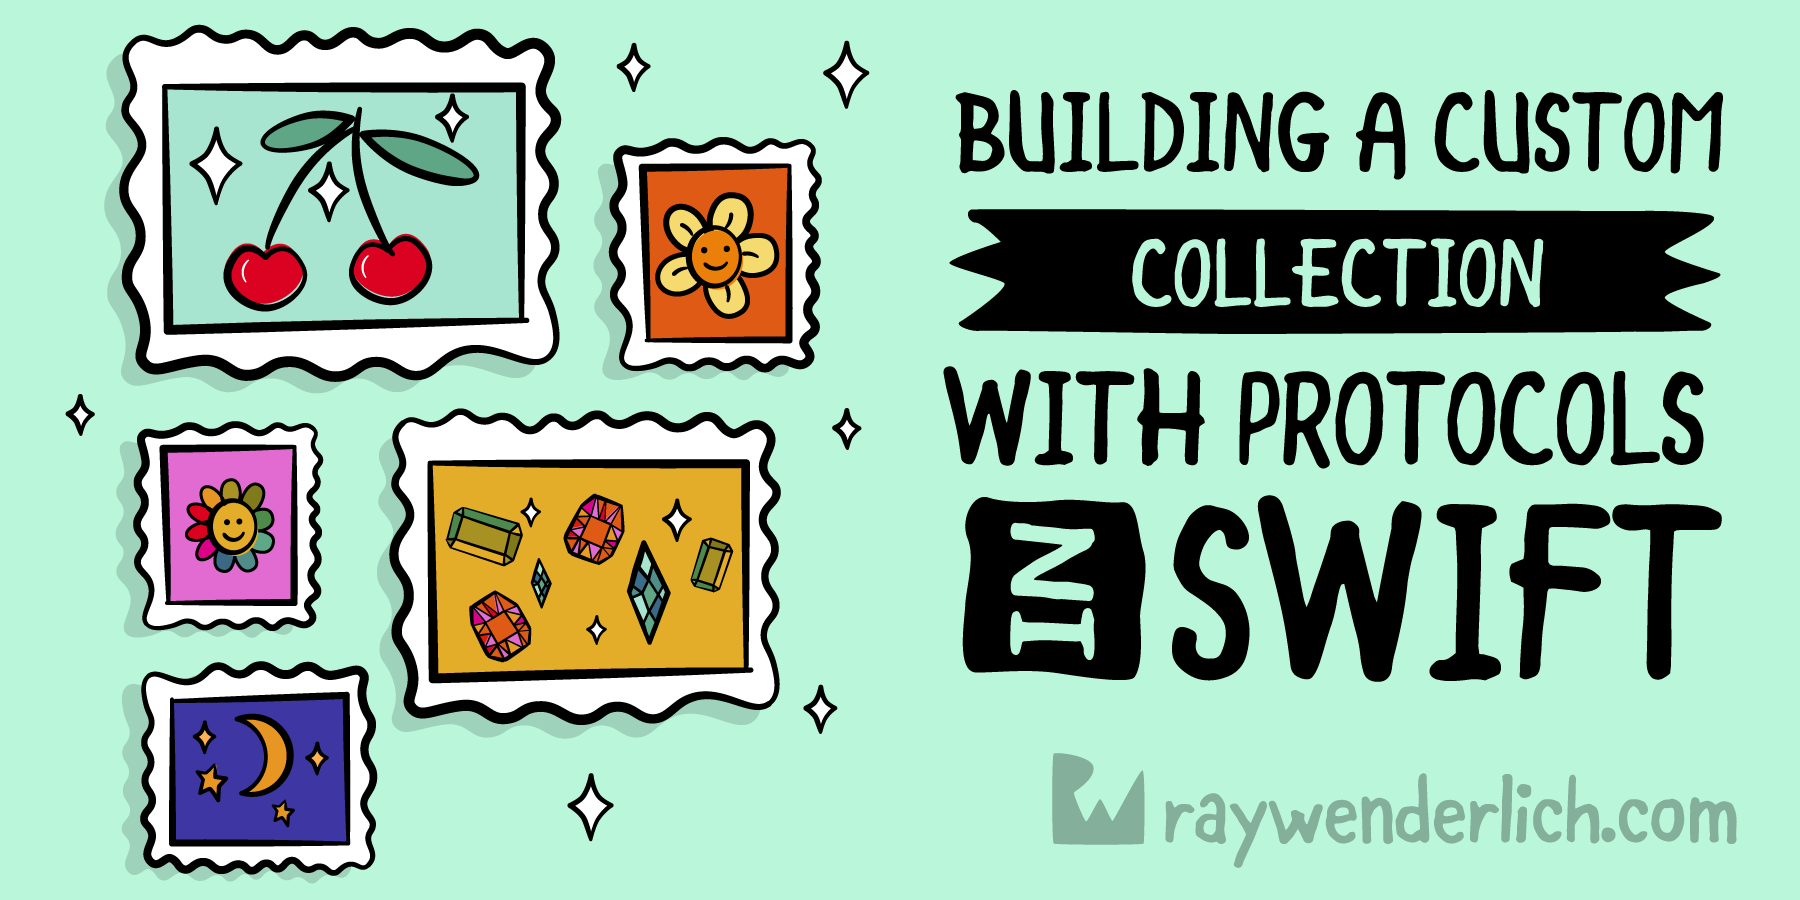 Image of article 'Building a Custom Collection with Protocols in Swift'